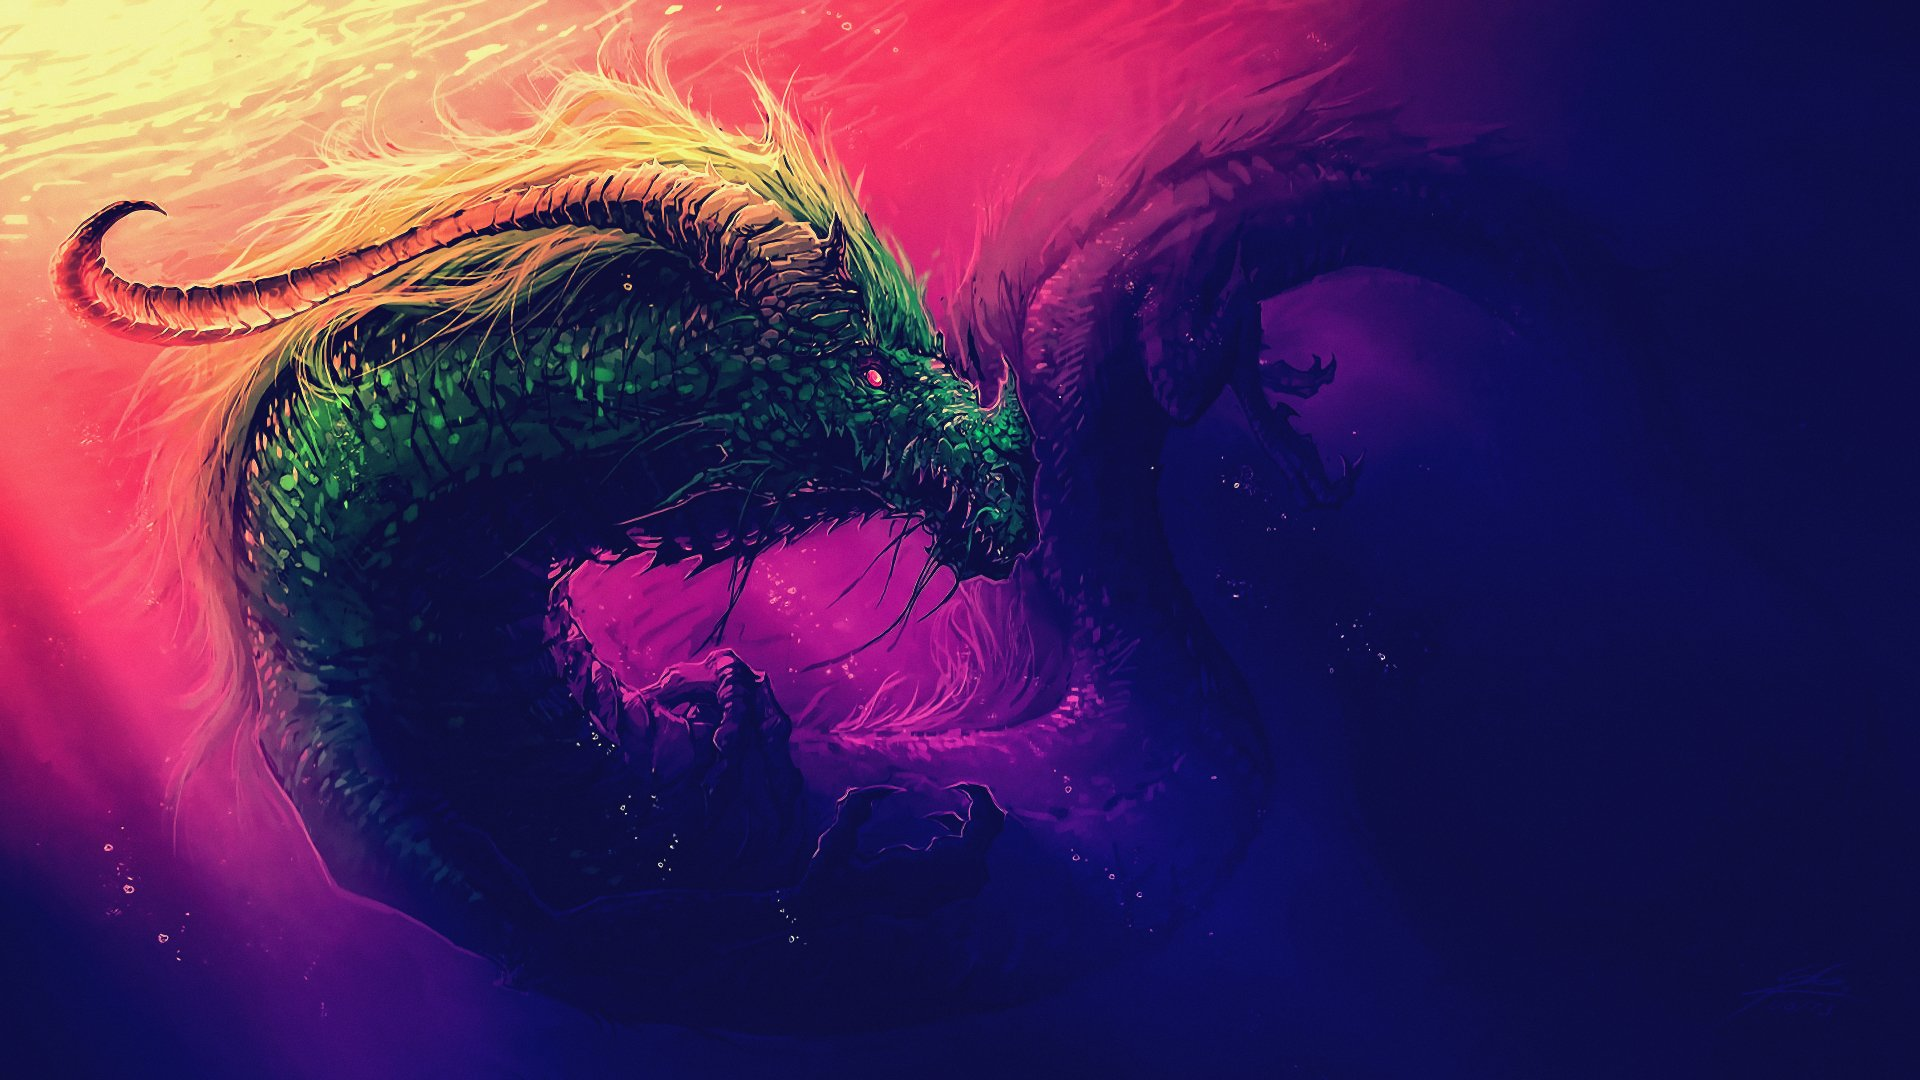 266 4k Ultra Hd Dragon Wallpapers Background Images Wallpaper Abyss